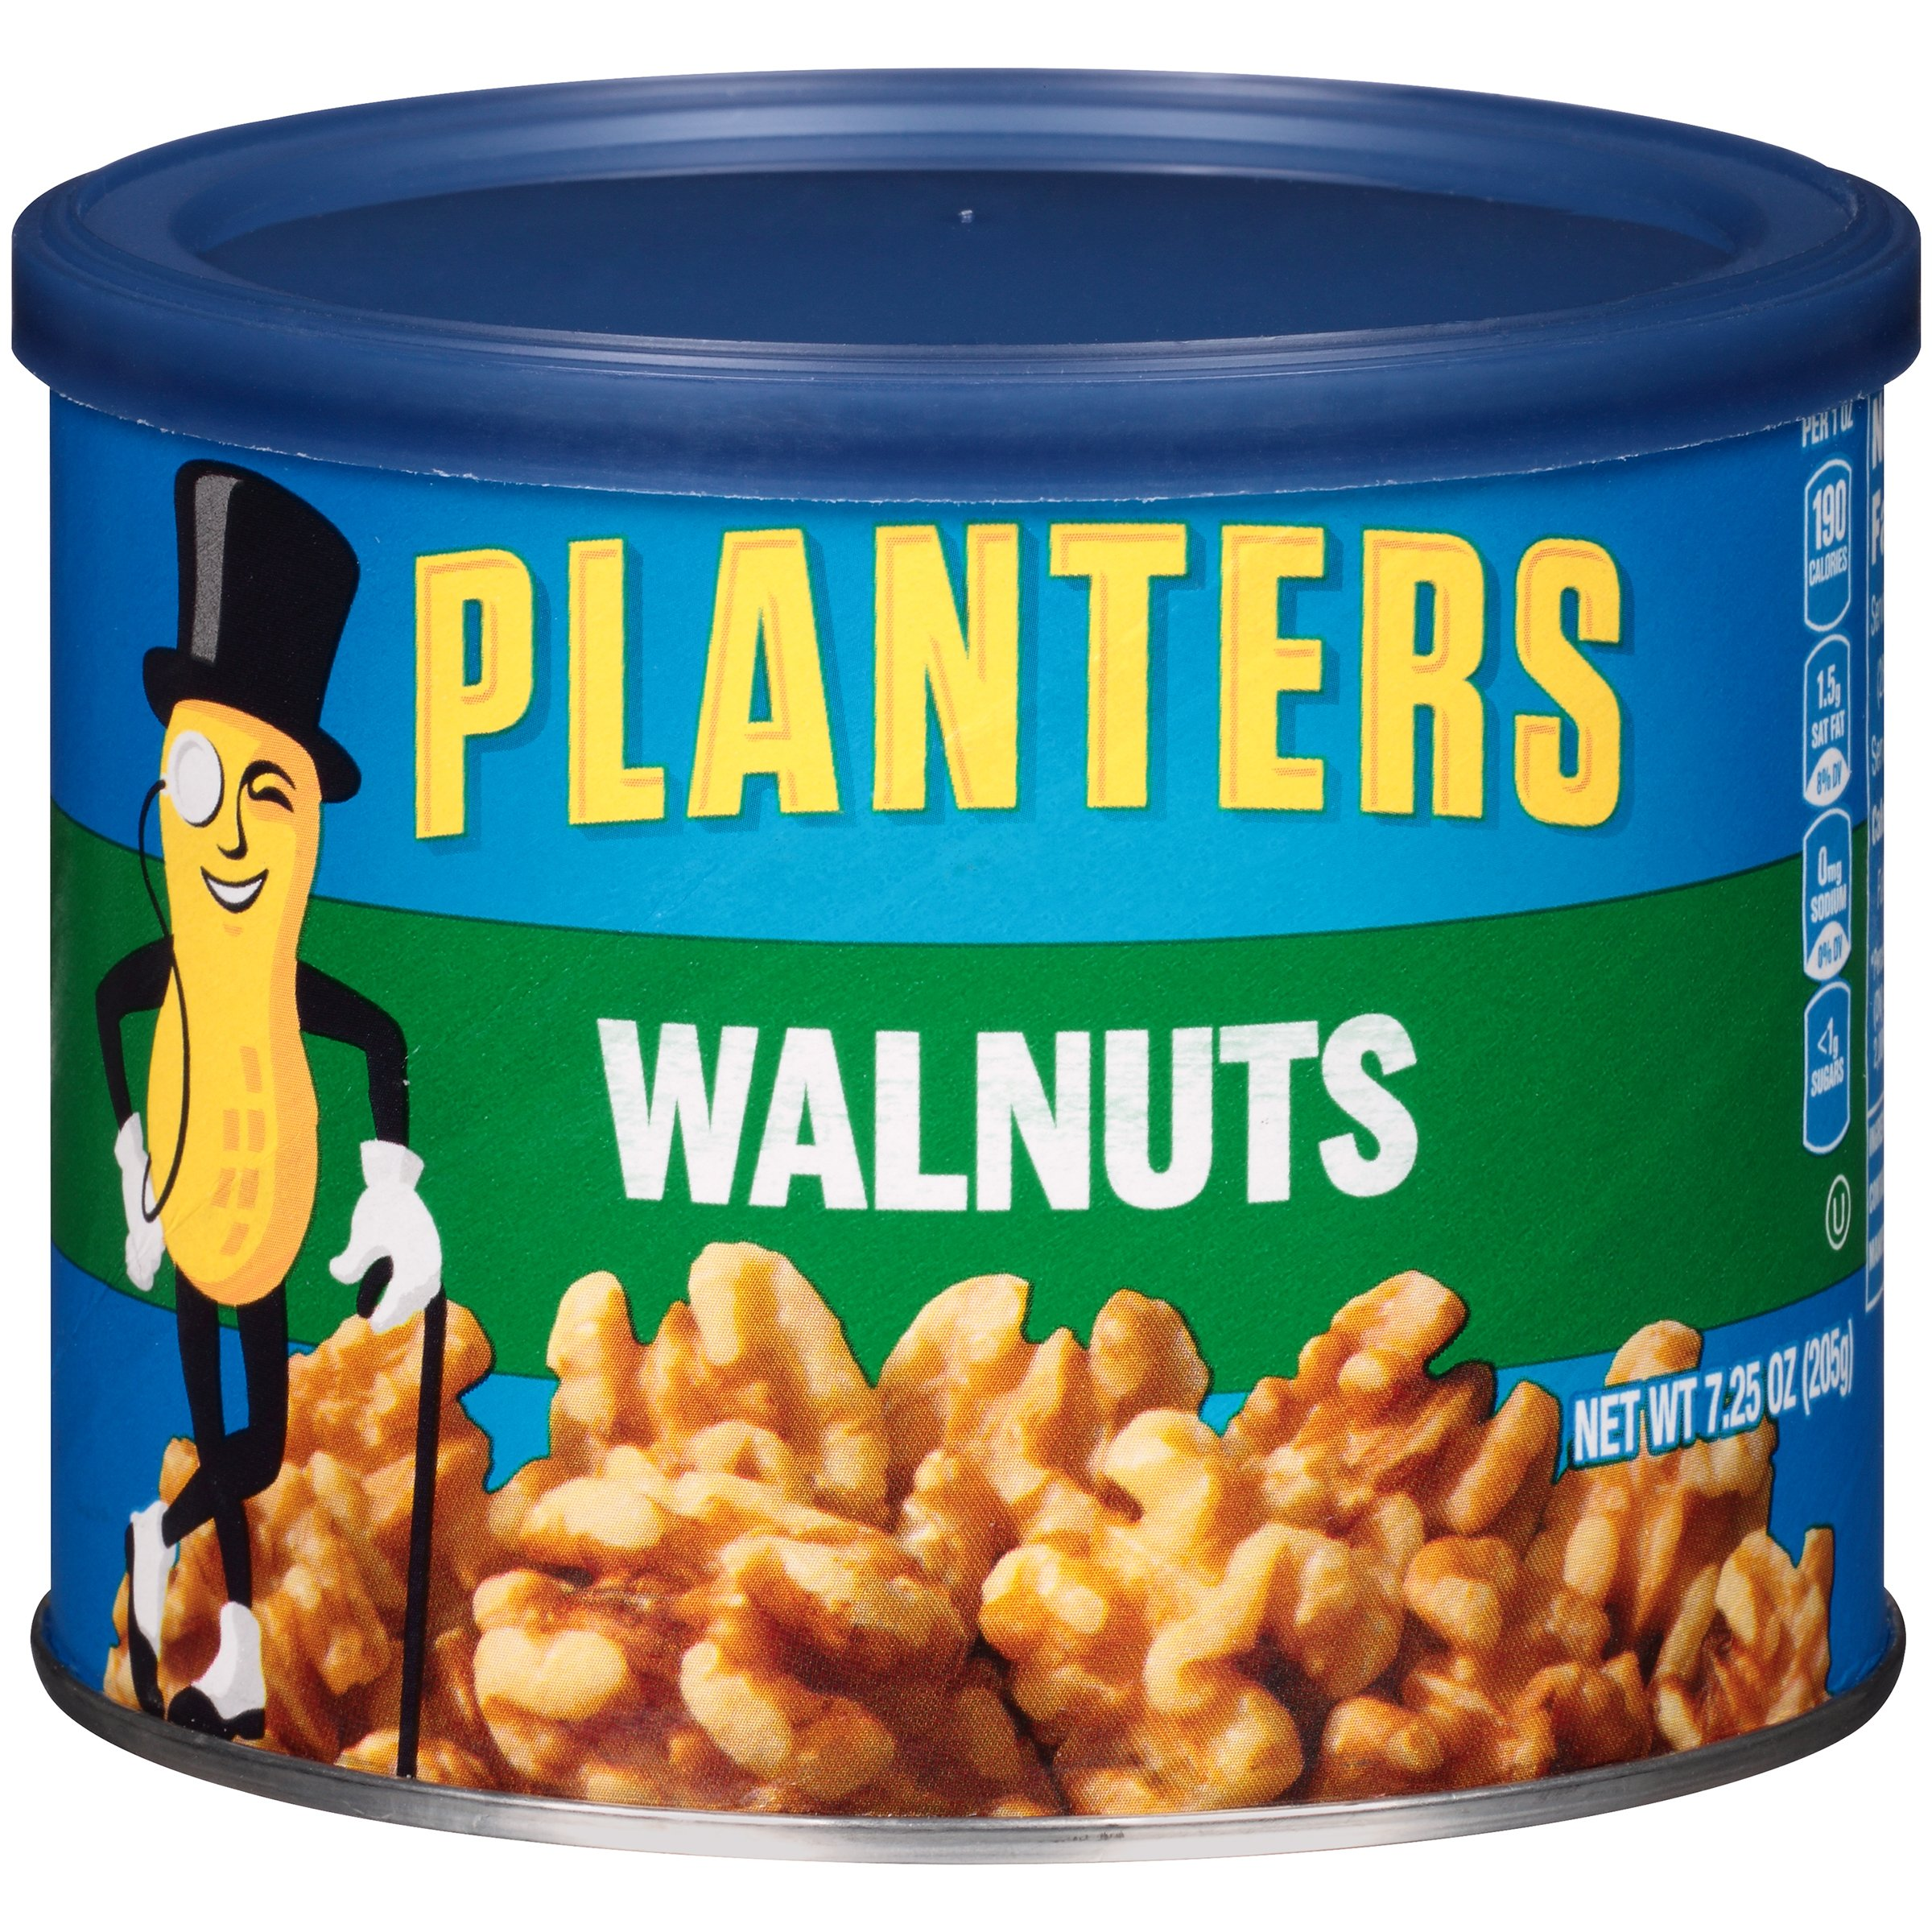 Planters Walnuts 7.25 oz. Canister